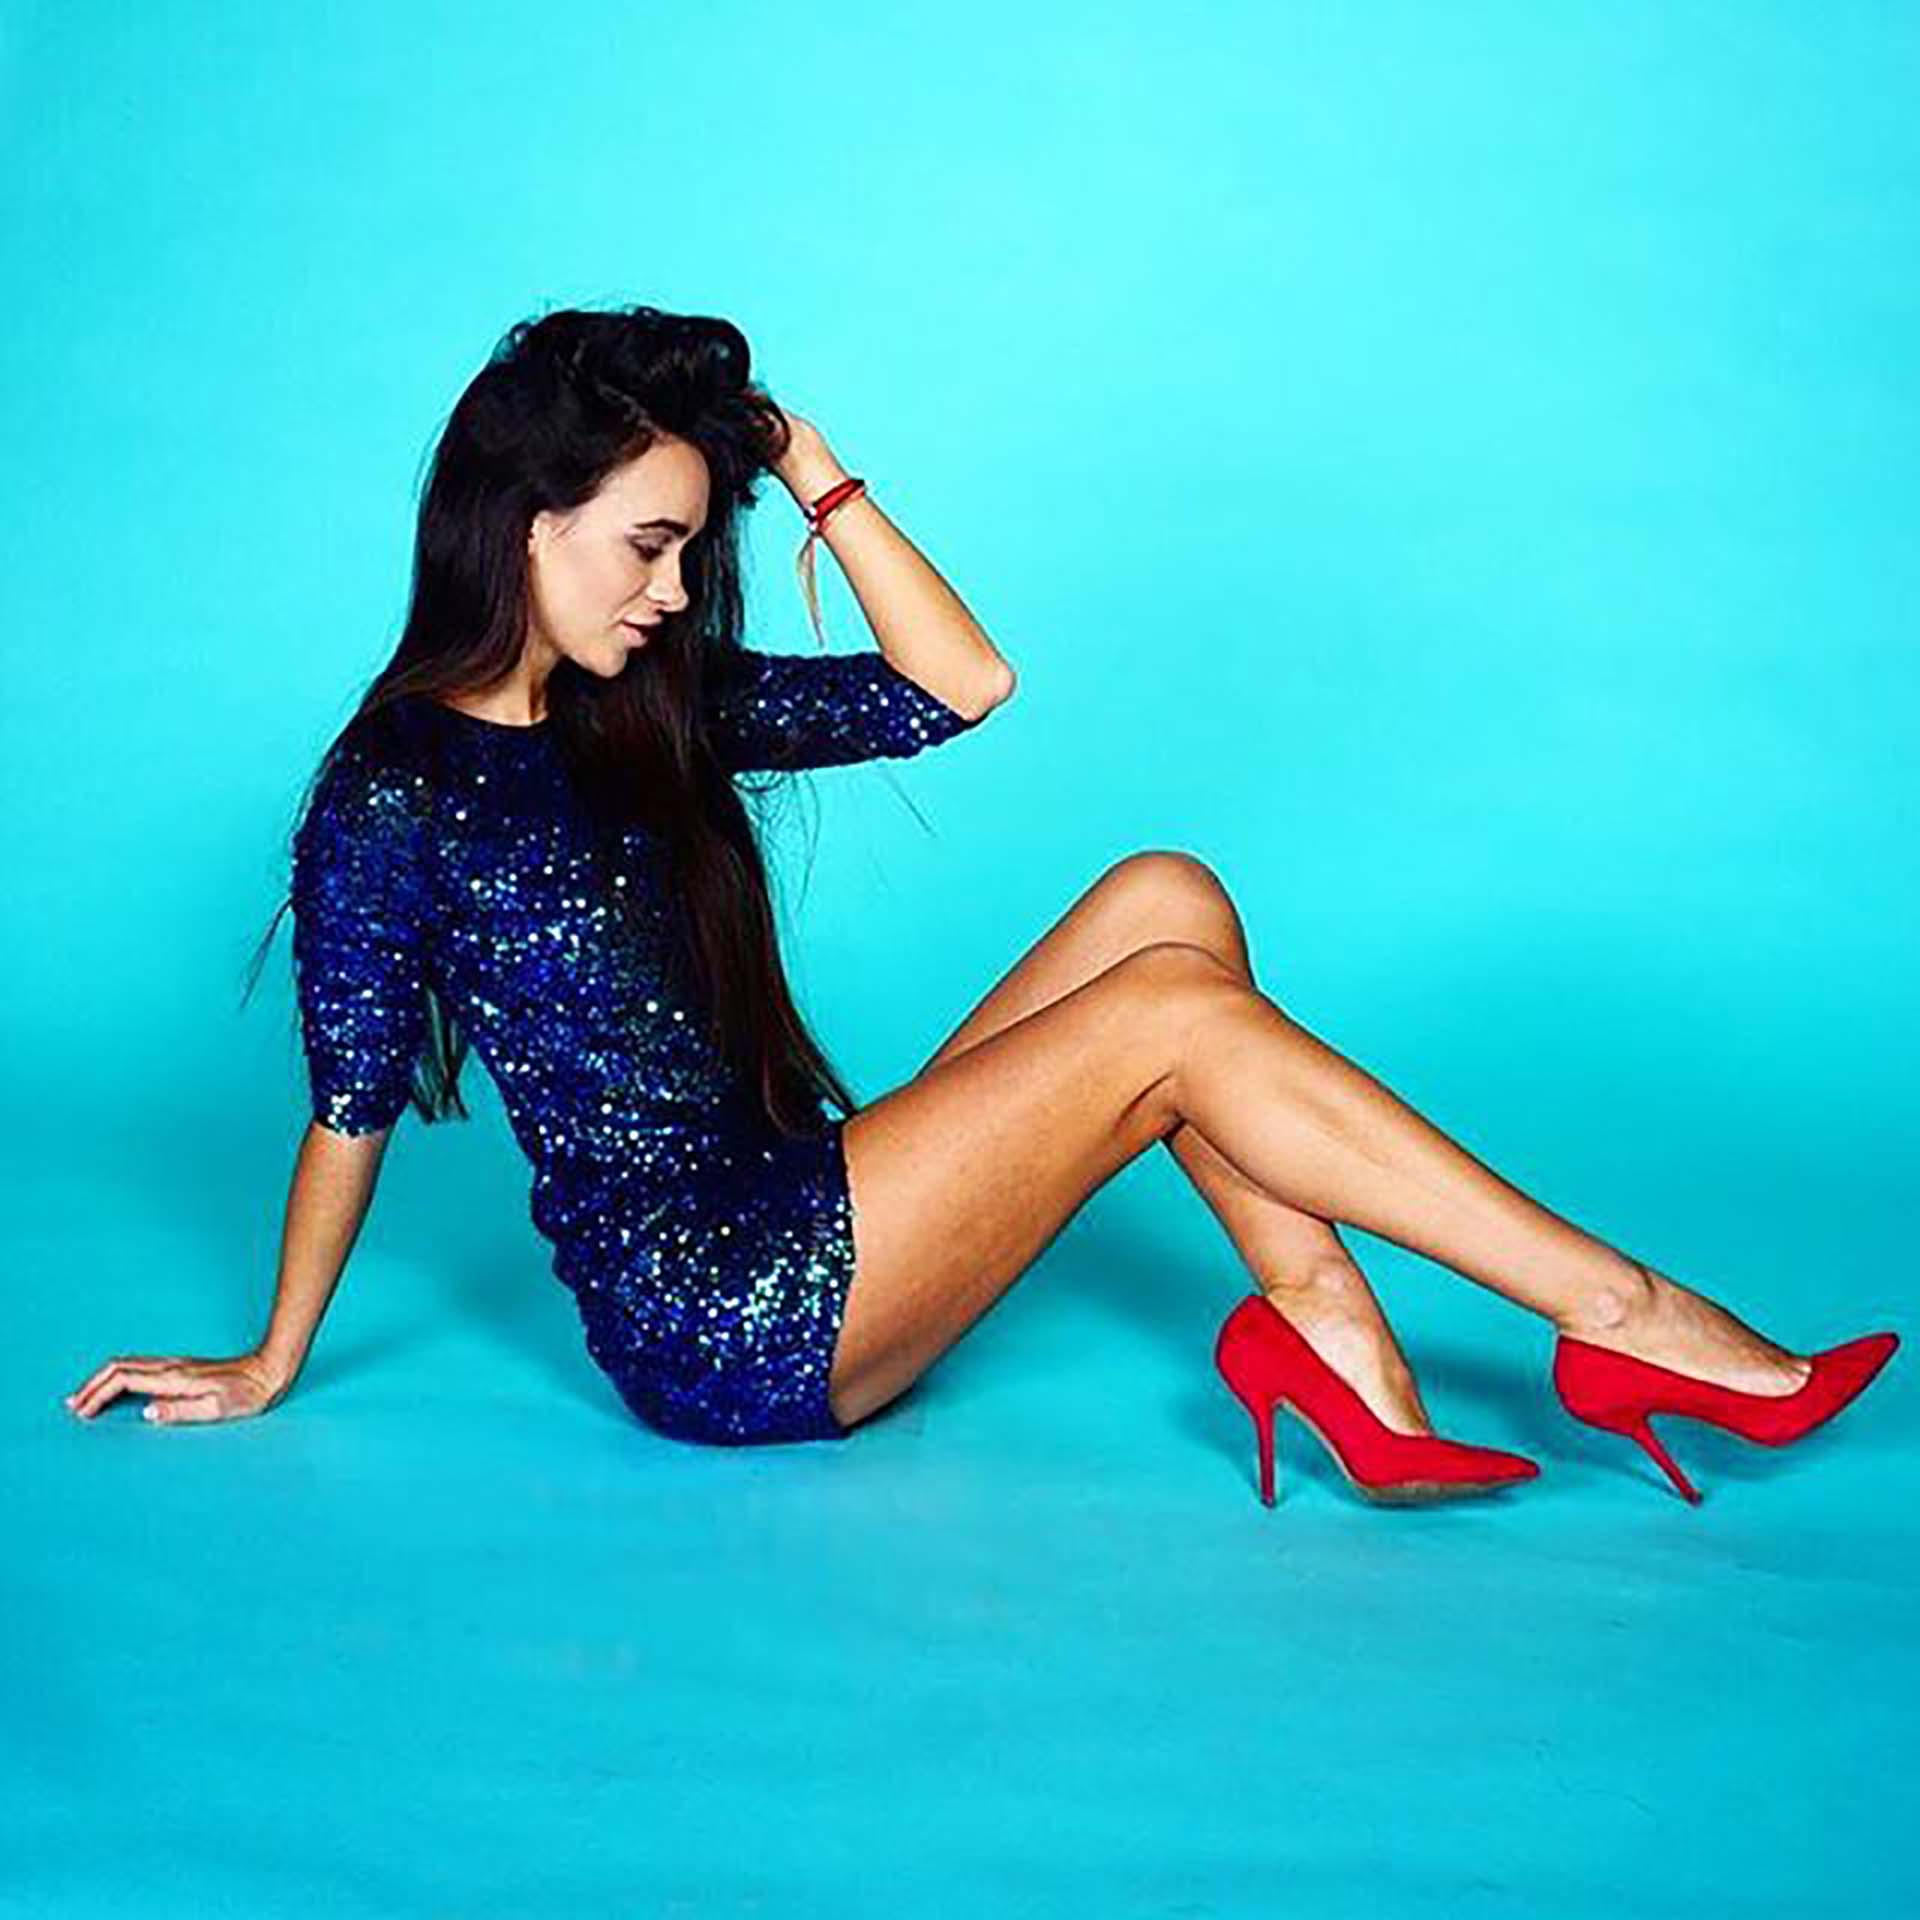 Quiet orgasm because parents are at home - 1 part 6